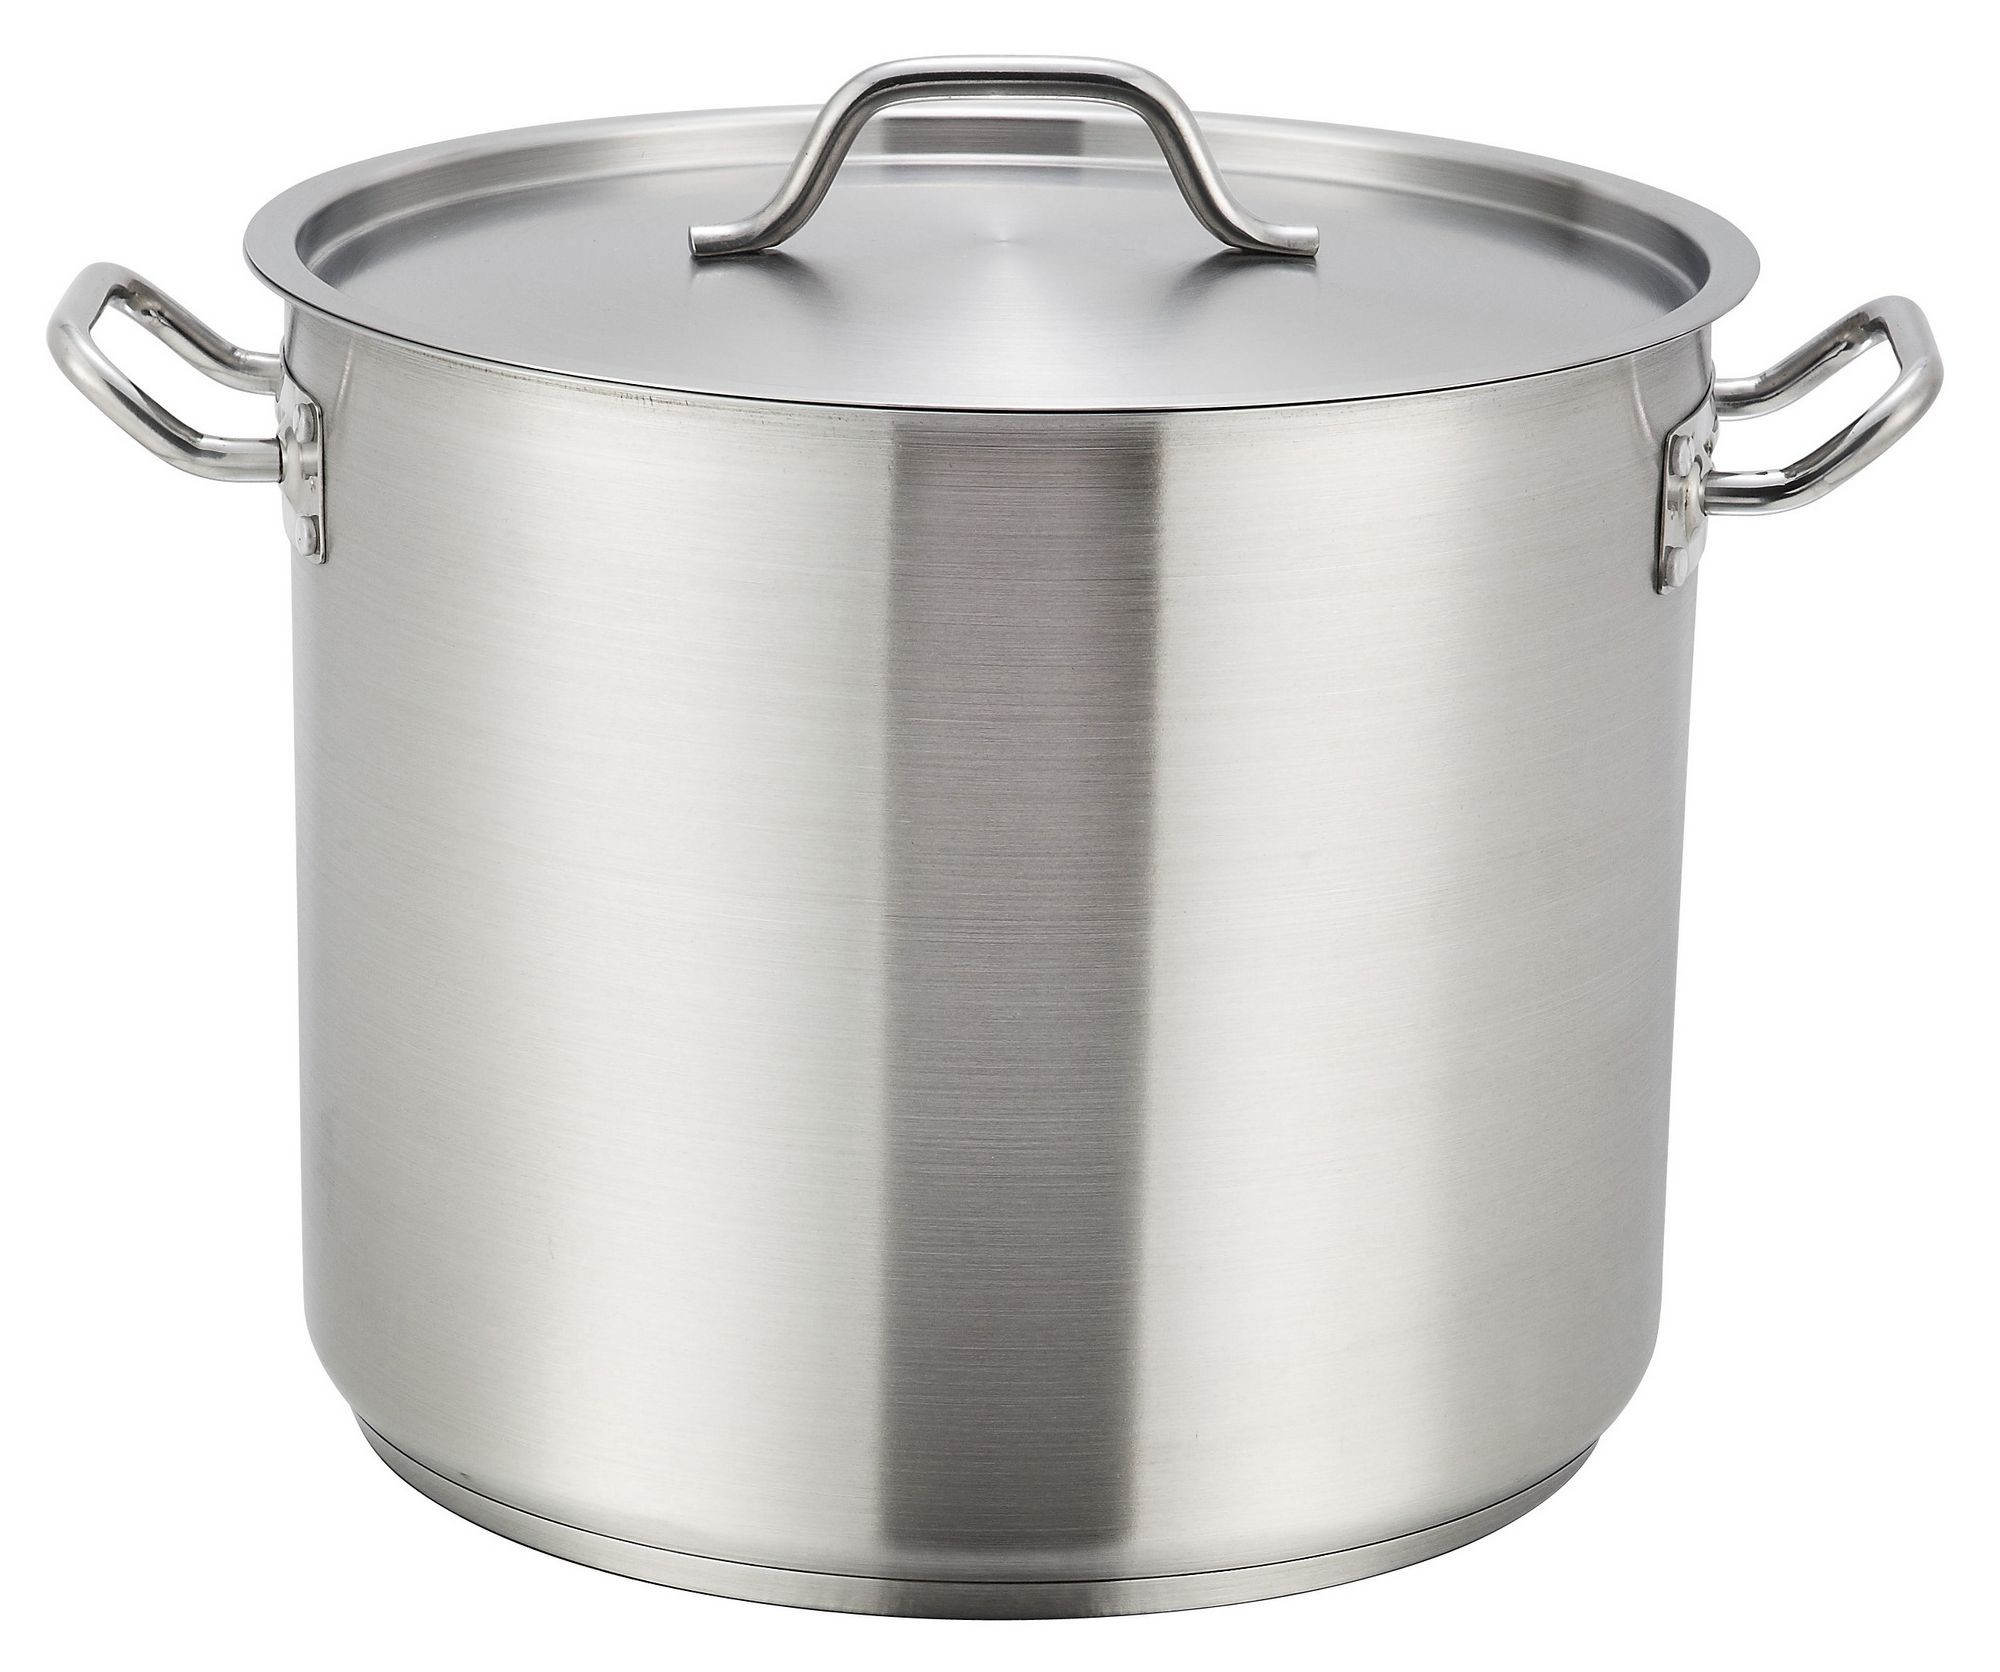 Winco SST-40 Premium Induction Stainless Steel 40 Qt. Stock Pot